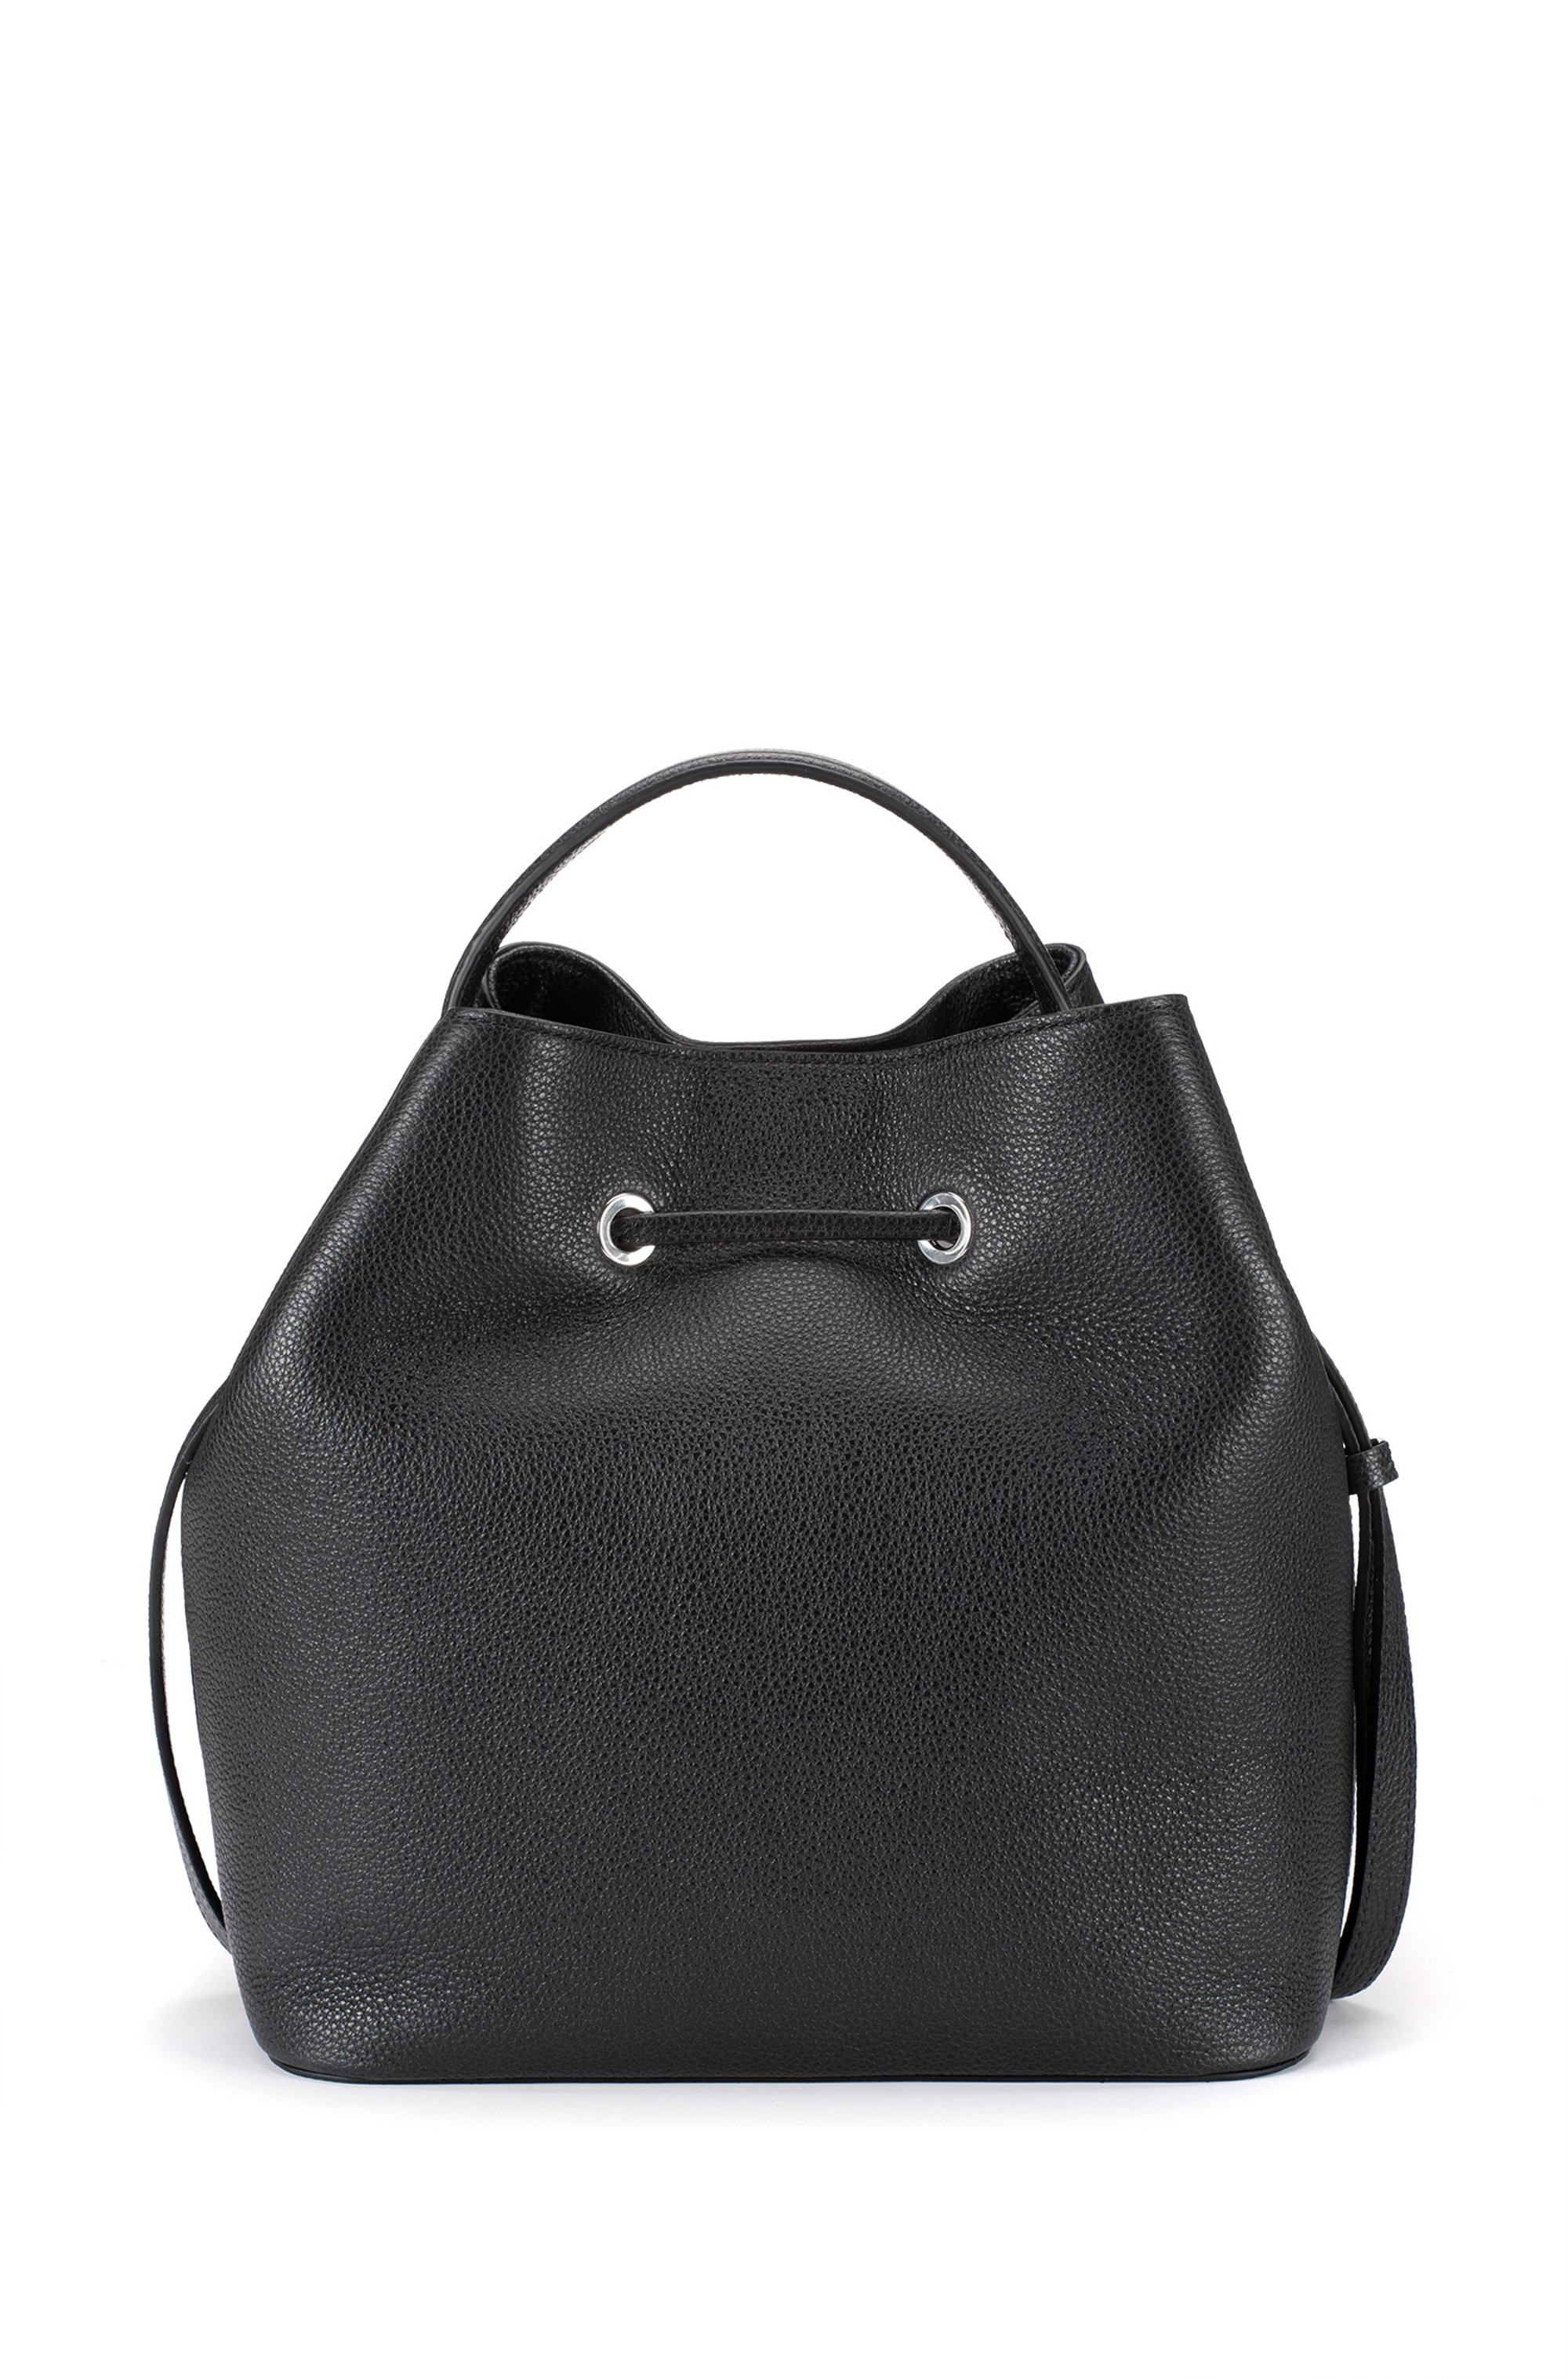 Bucket bag in grained leather with new-season hardware